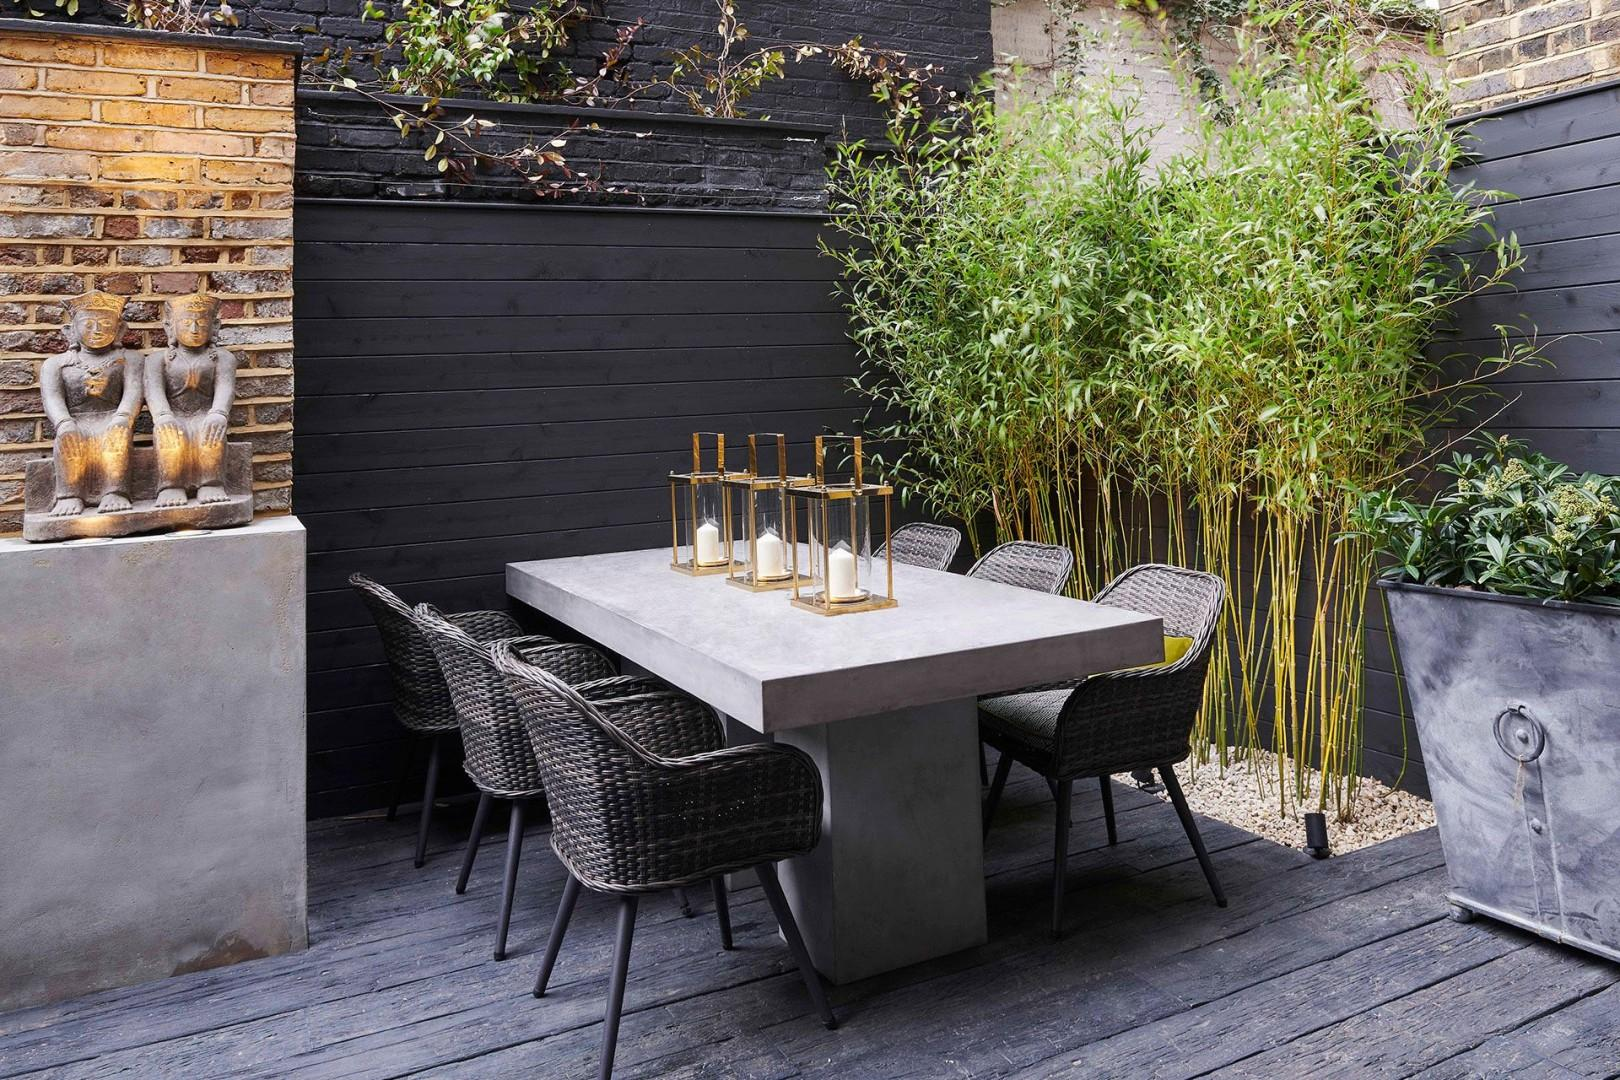 In the summer, enjoy warm London evenings at the patio table